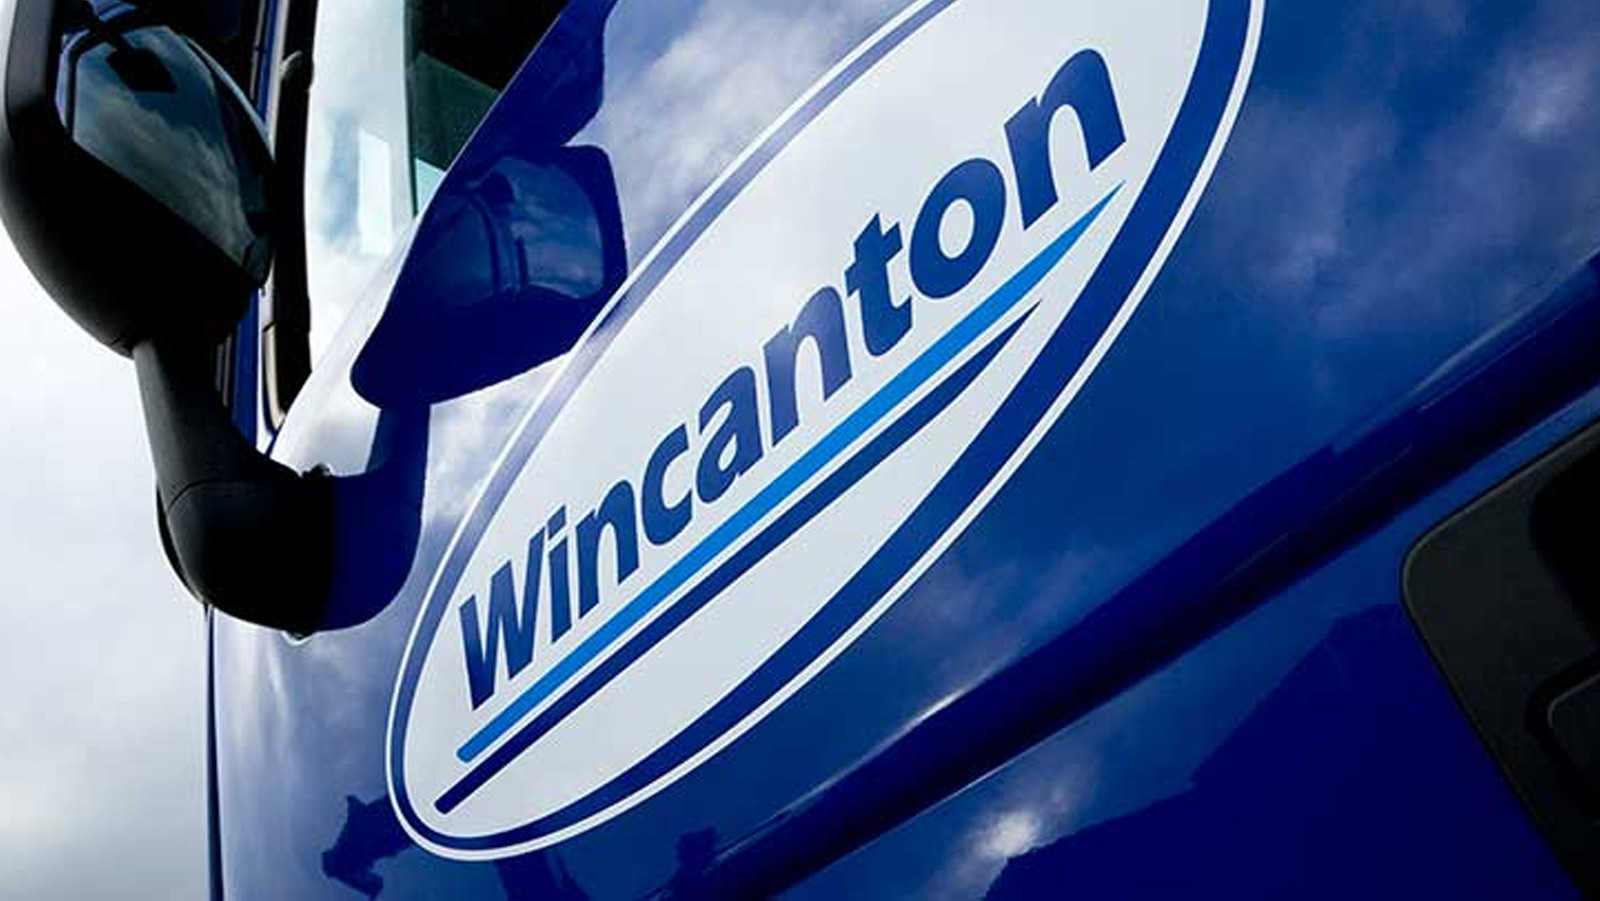 CognitOps Selected for Wincanton W2 Labs